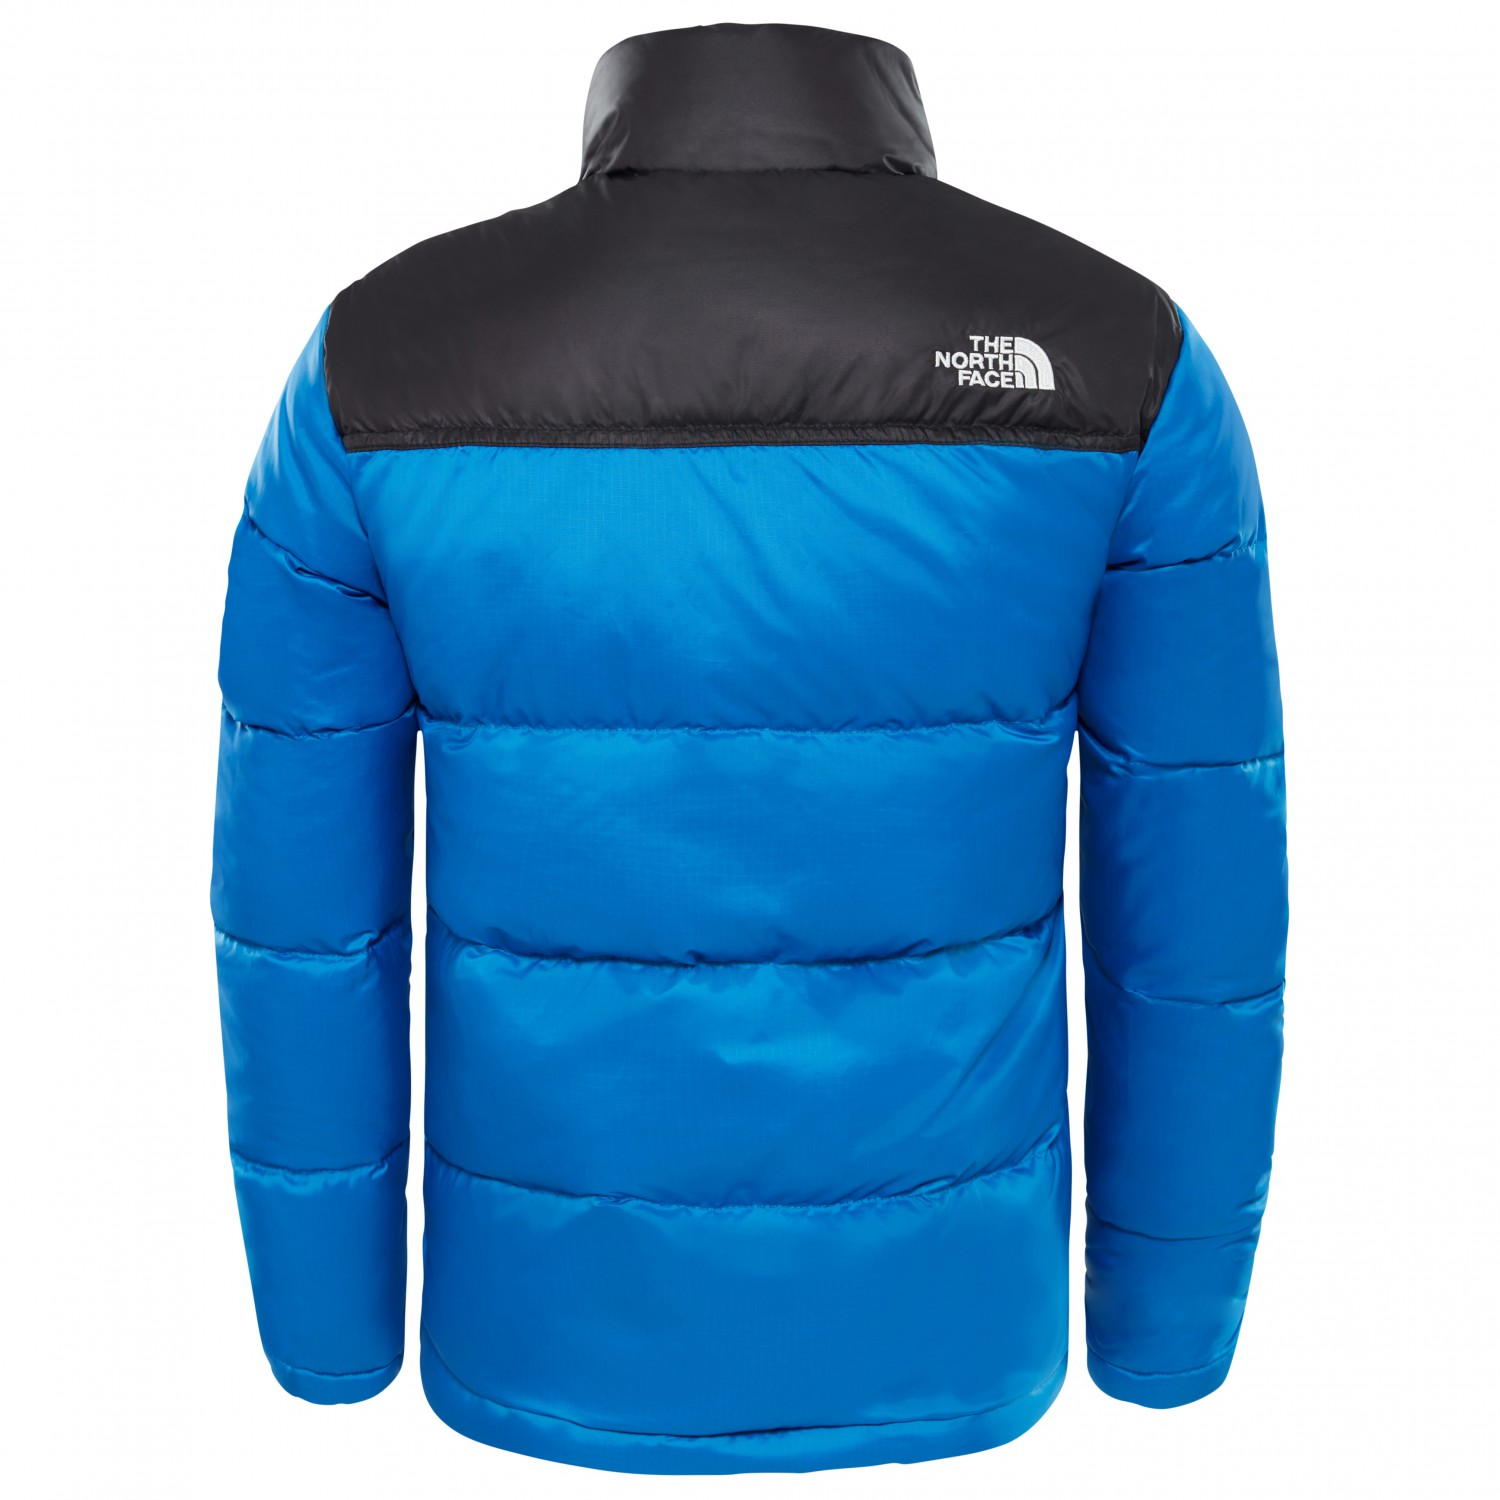 new product 8a93e fdd0d The North Face Nuptse Down Jacket - Down jacket Kids   Buy ...